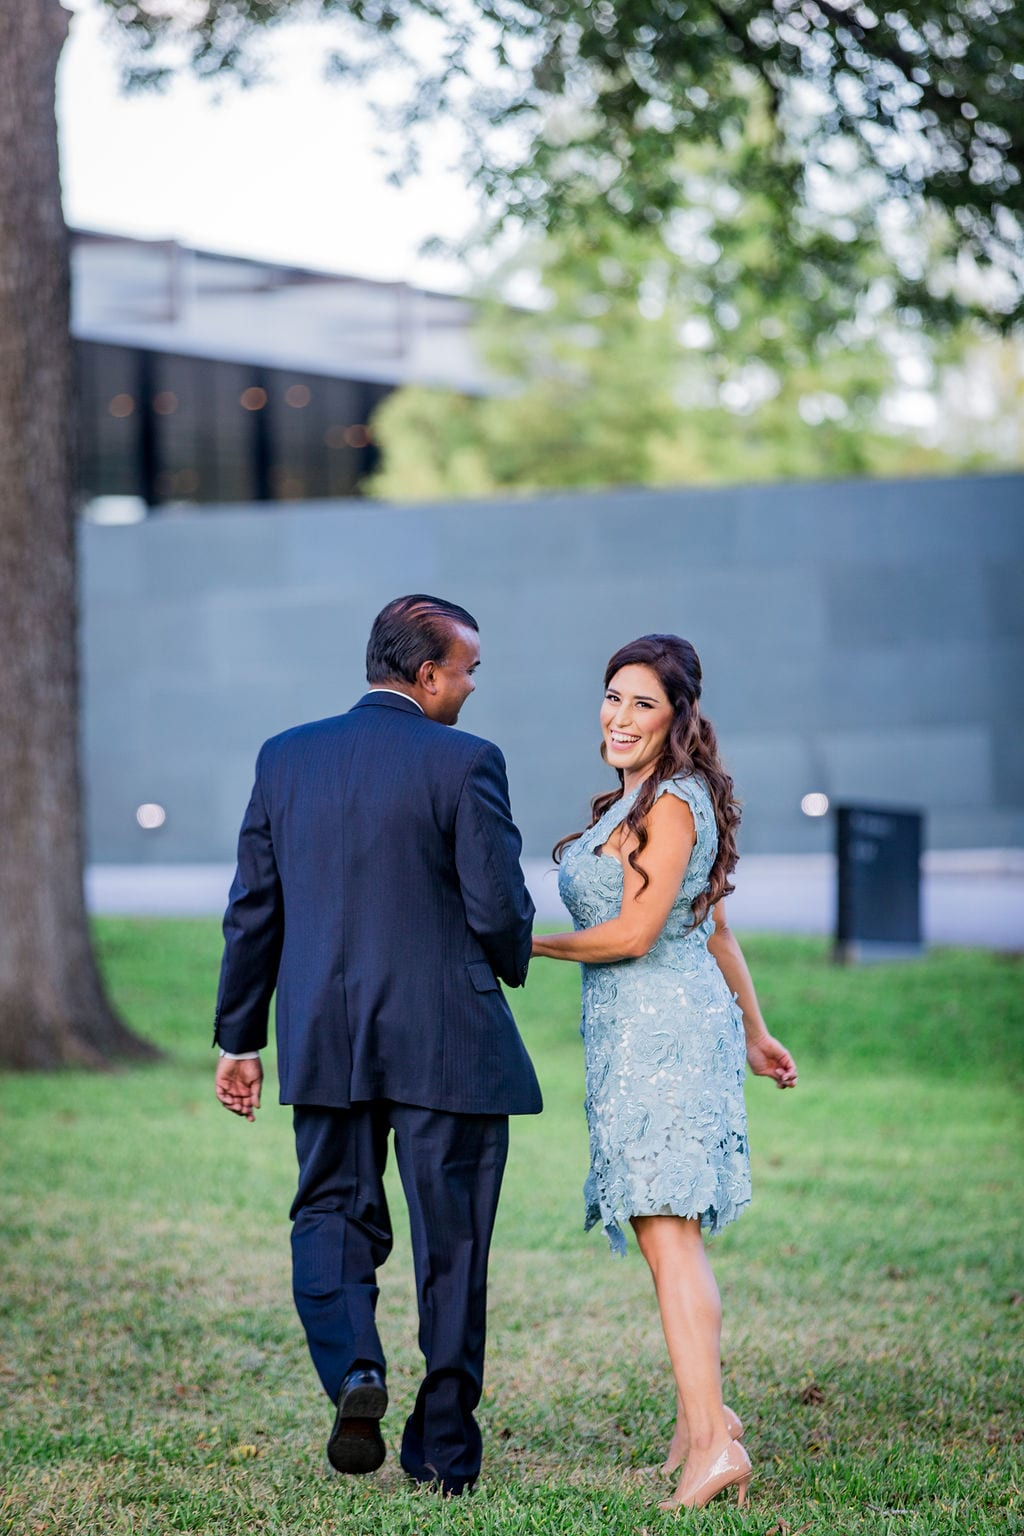 Mary Elizabeth's engagement at the McNay walking